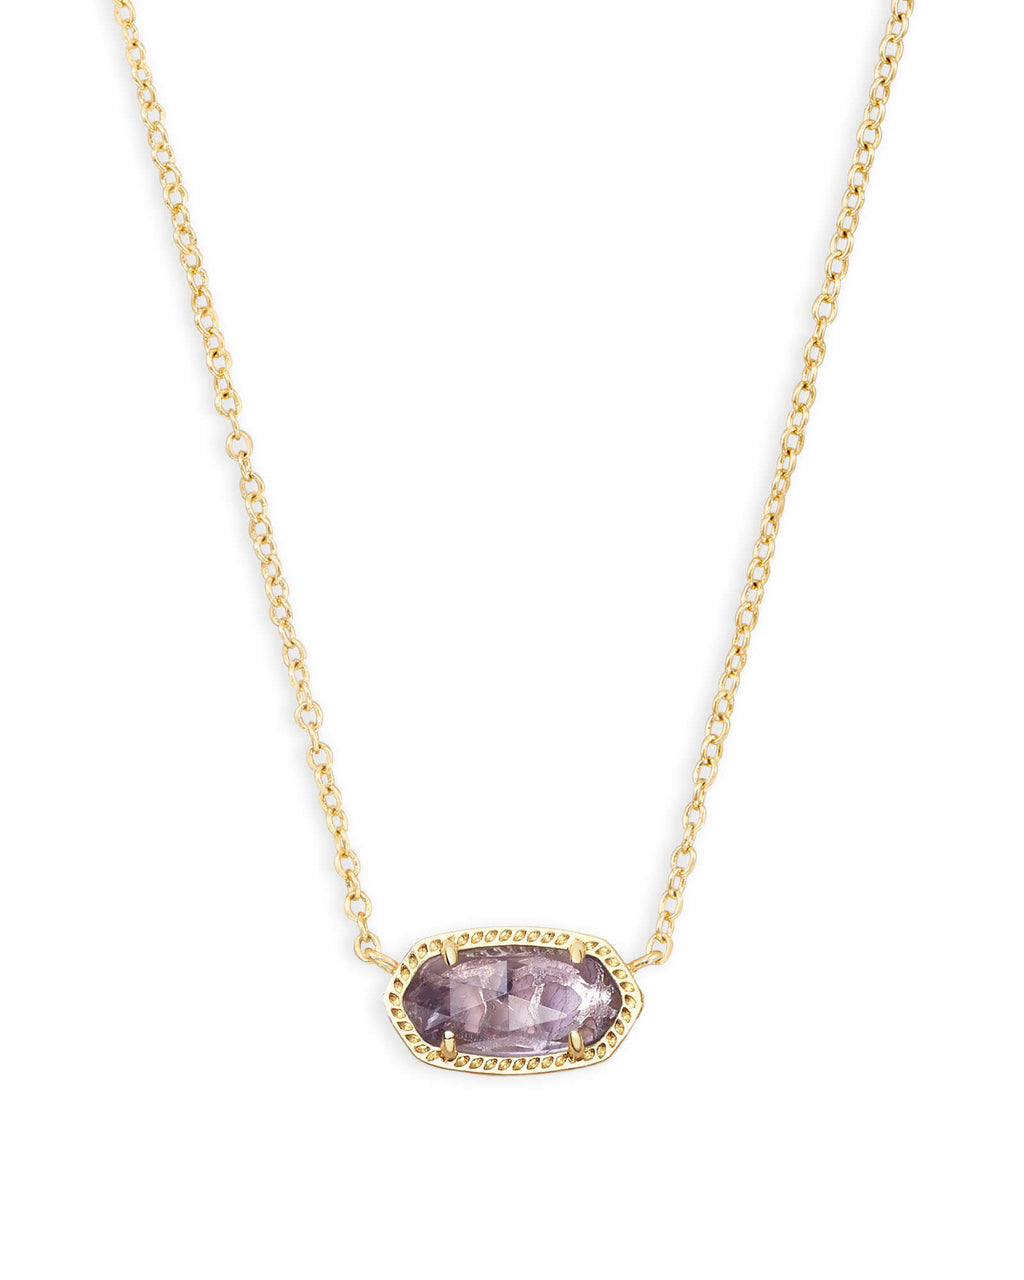 Kendra Scott Elisa Gold Pendant Necklace In Amethyst February Birthstone